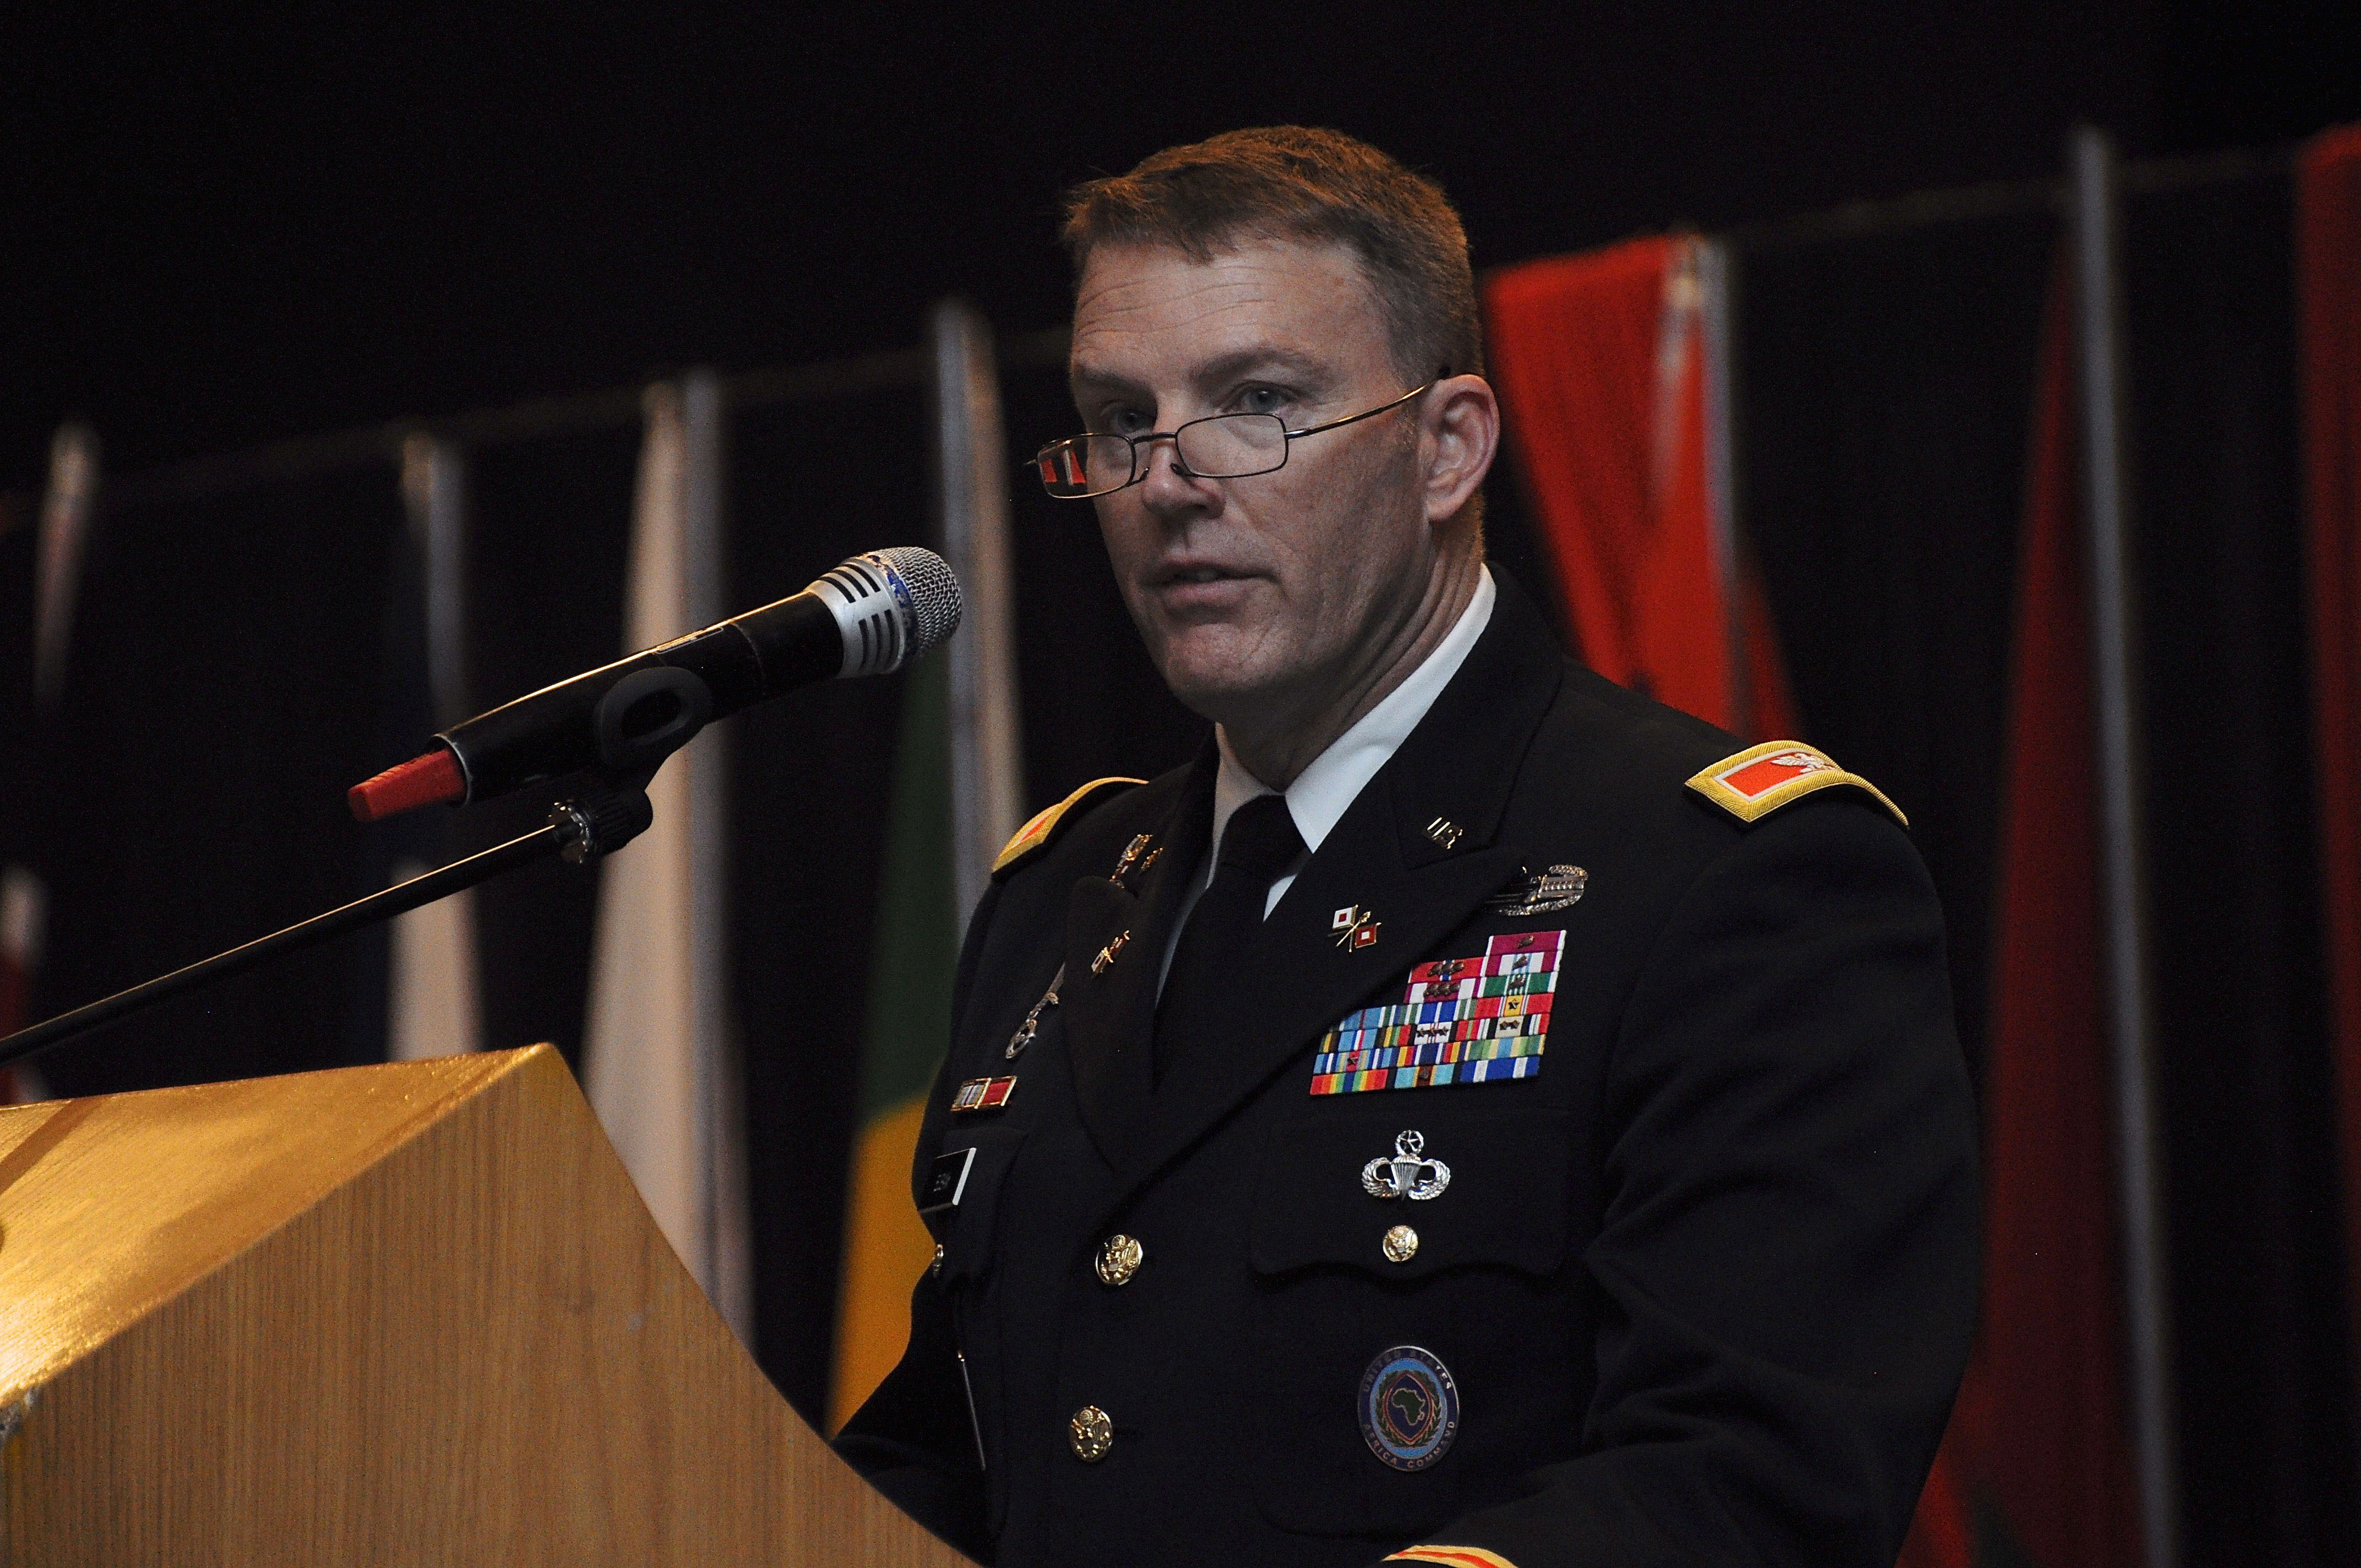 LILONGWE, Malawi (Aug. 25, 2017)-- U.S. Army Col. Christopher L. Eubank, U.S. Africa Command (AFRICOM) Director of Communications, gives closing remarks during the closing ceremony of Africa Endeavor 2017 (AE17) in Lilongwe, Malawi. AE17 is an AFRICOM annual senior leader and communications symposium and technology expo designed to develop standardized, multinational communications practices for peacekeeping and disaster response missions mandated by the African Union and the United Nations. (Official Photo by U.S. Navy Mass Communication Specialist 2nd Class (SW/AW) Dominique Shelton/For Release.)